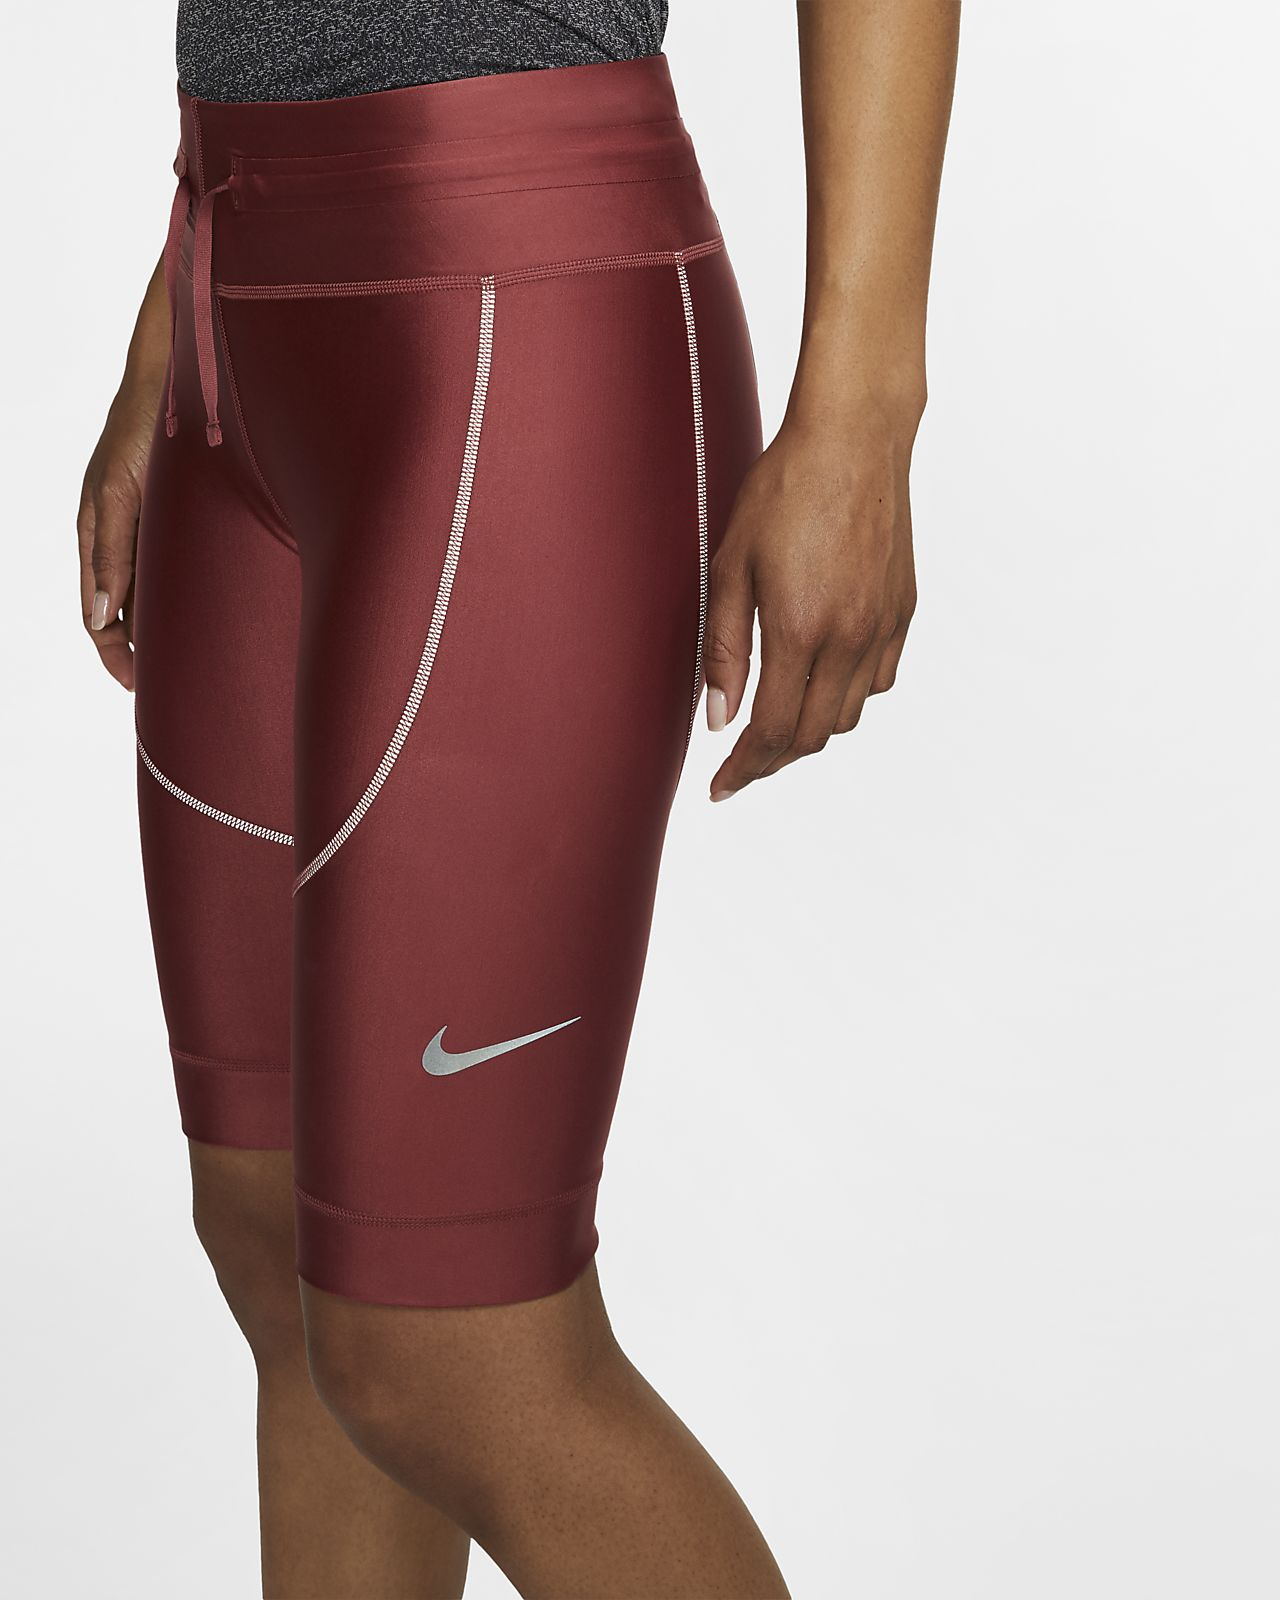 Nike City Ready Lauf-Tights für Damen